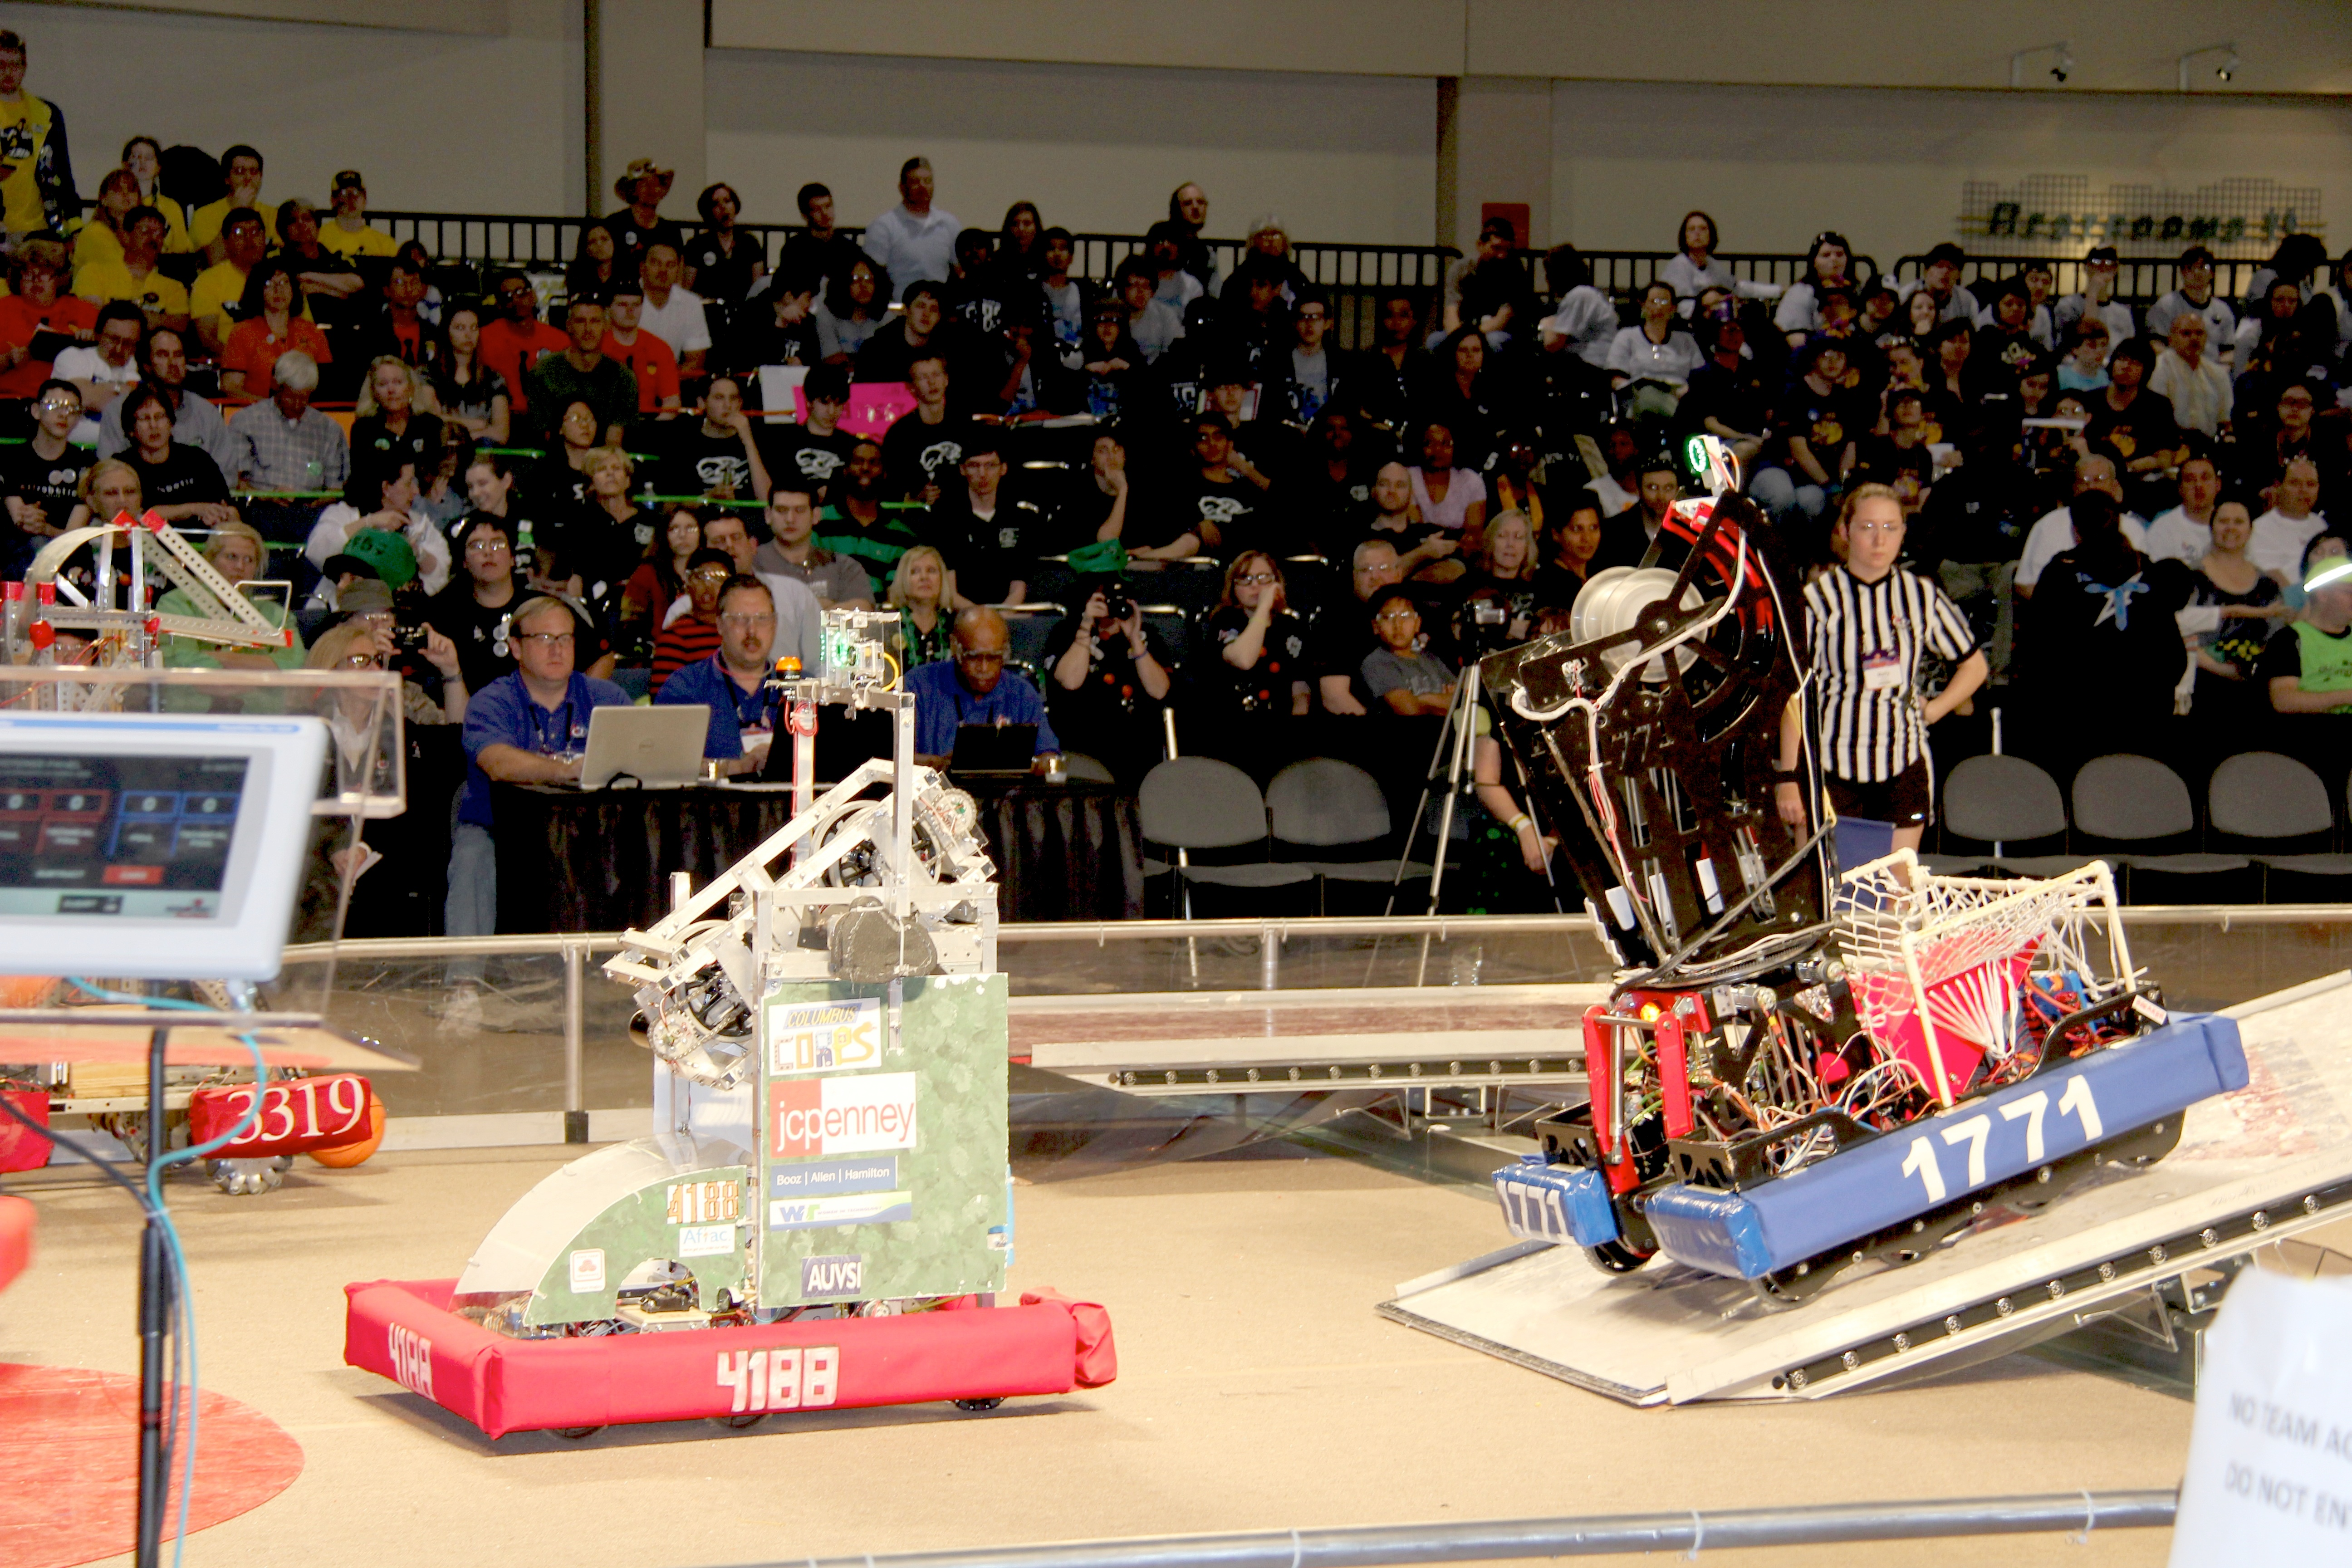 Seven teams of Georgia 4-H'ers were among the 60 teams of high school students whose robots competed in the FIRST Robotics Competition's Peachtree Regional held March 16 -17 at the Gwinnett Center in Duluth.